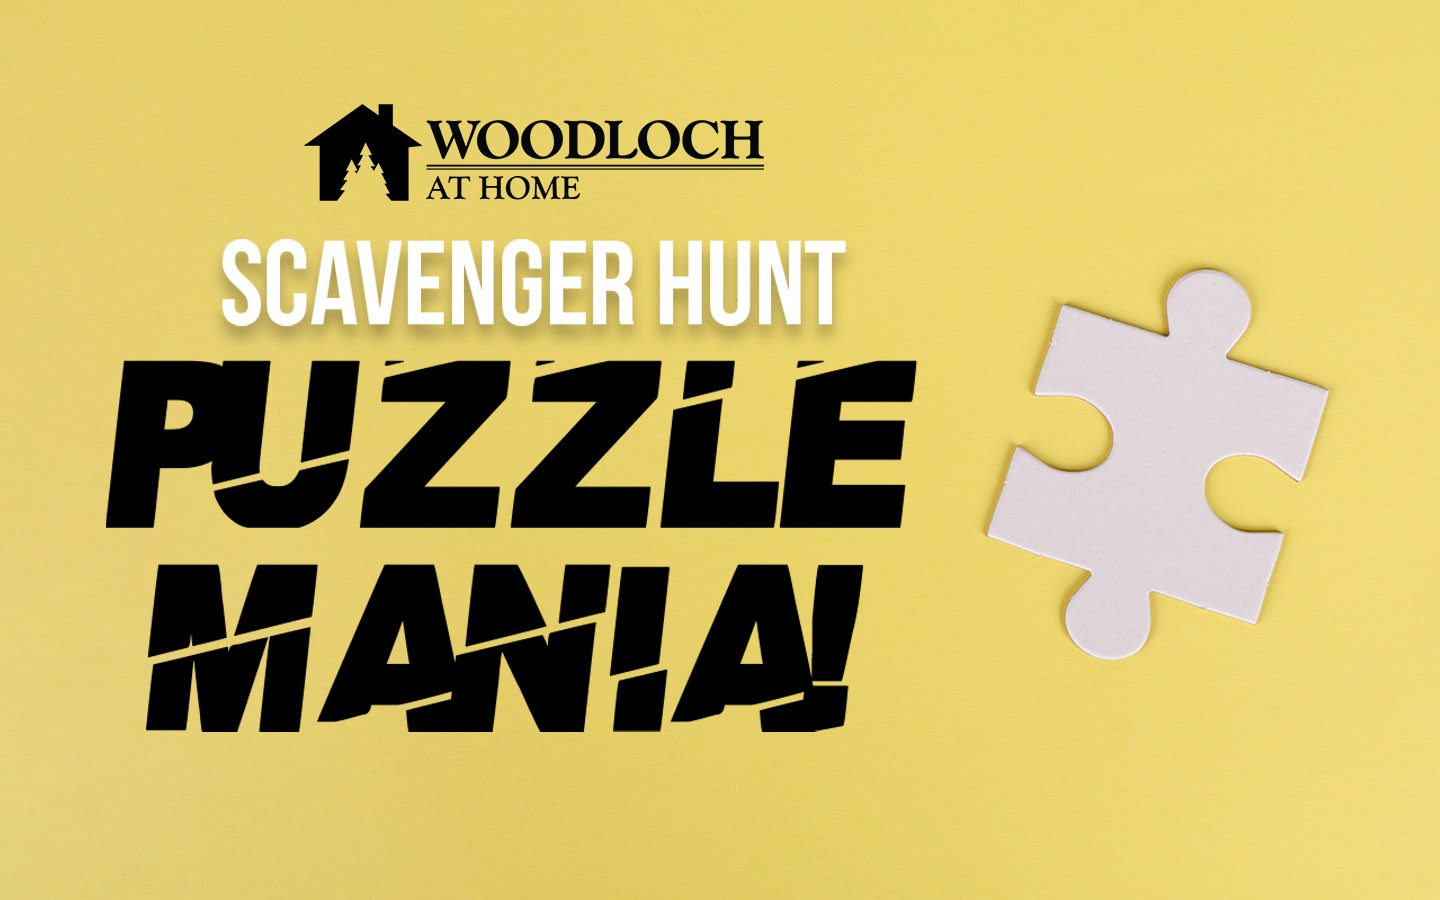 Text: Woodloch at Home, Scavenger Hunt, Puzzle Mania!